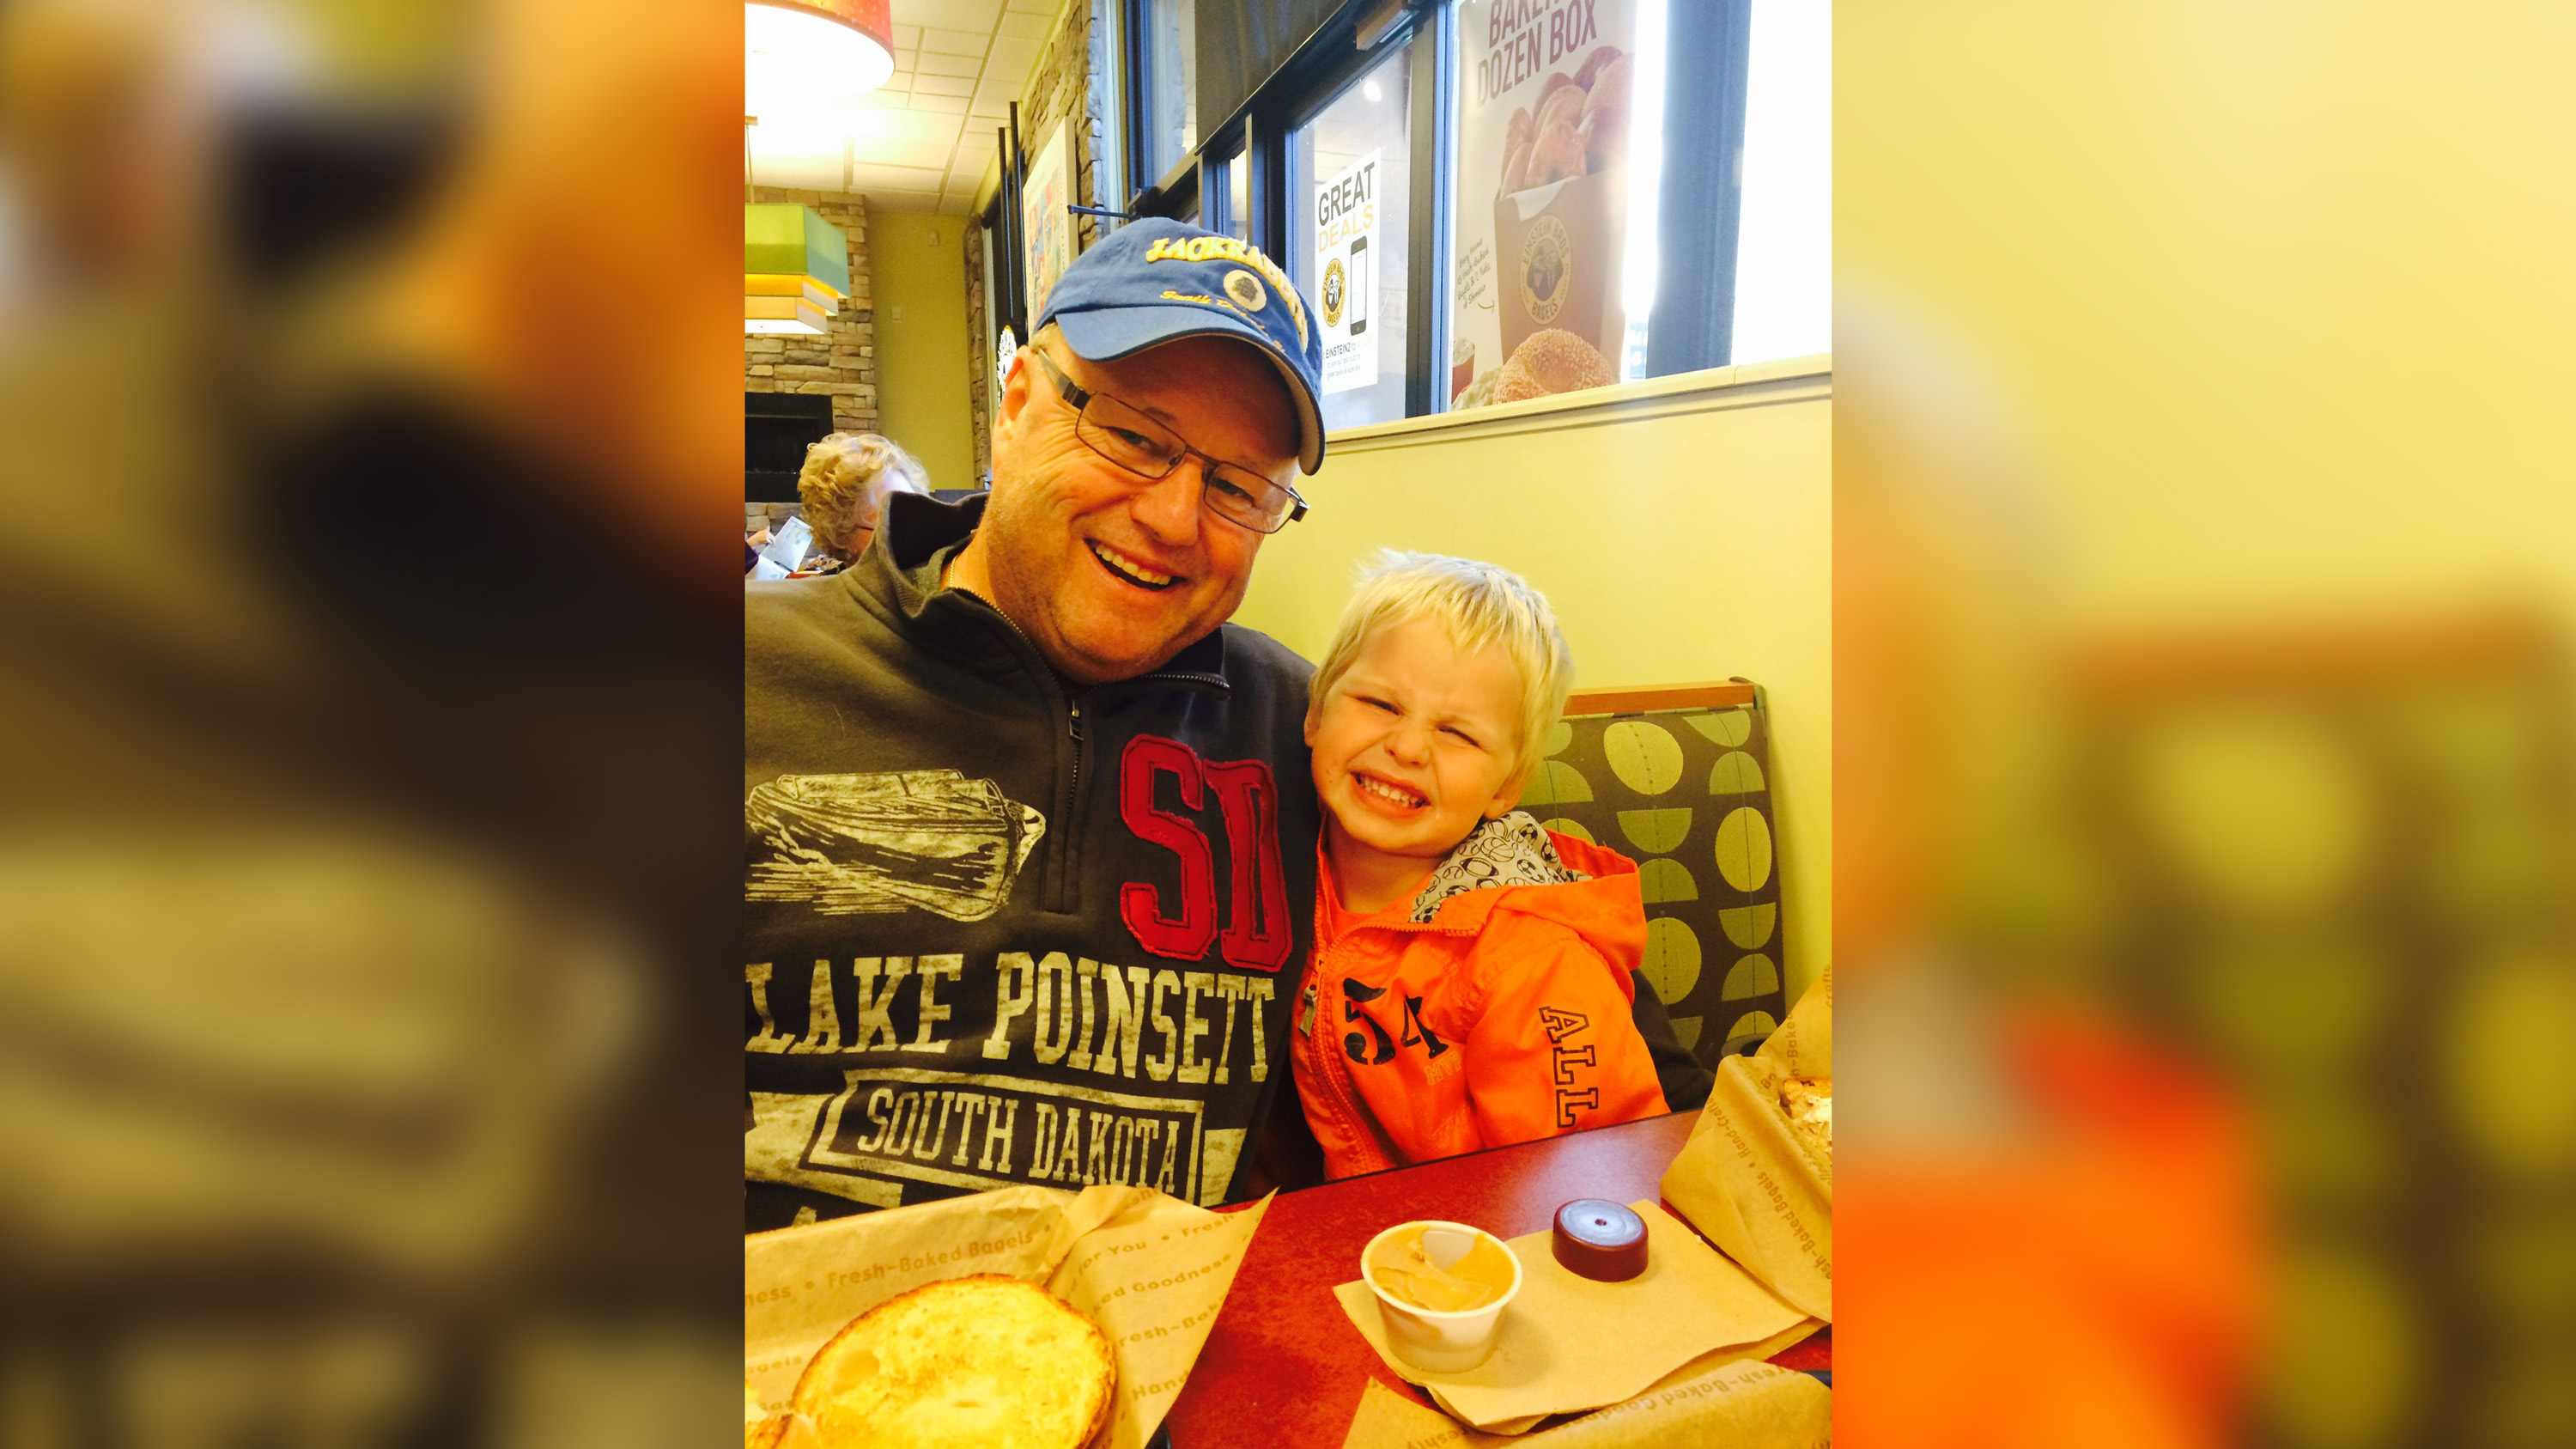 A South Dakota man who voiced concerns about his state's hospital capacity died from coronavirus